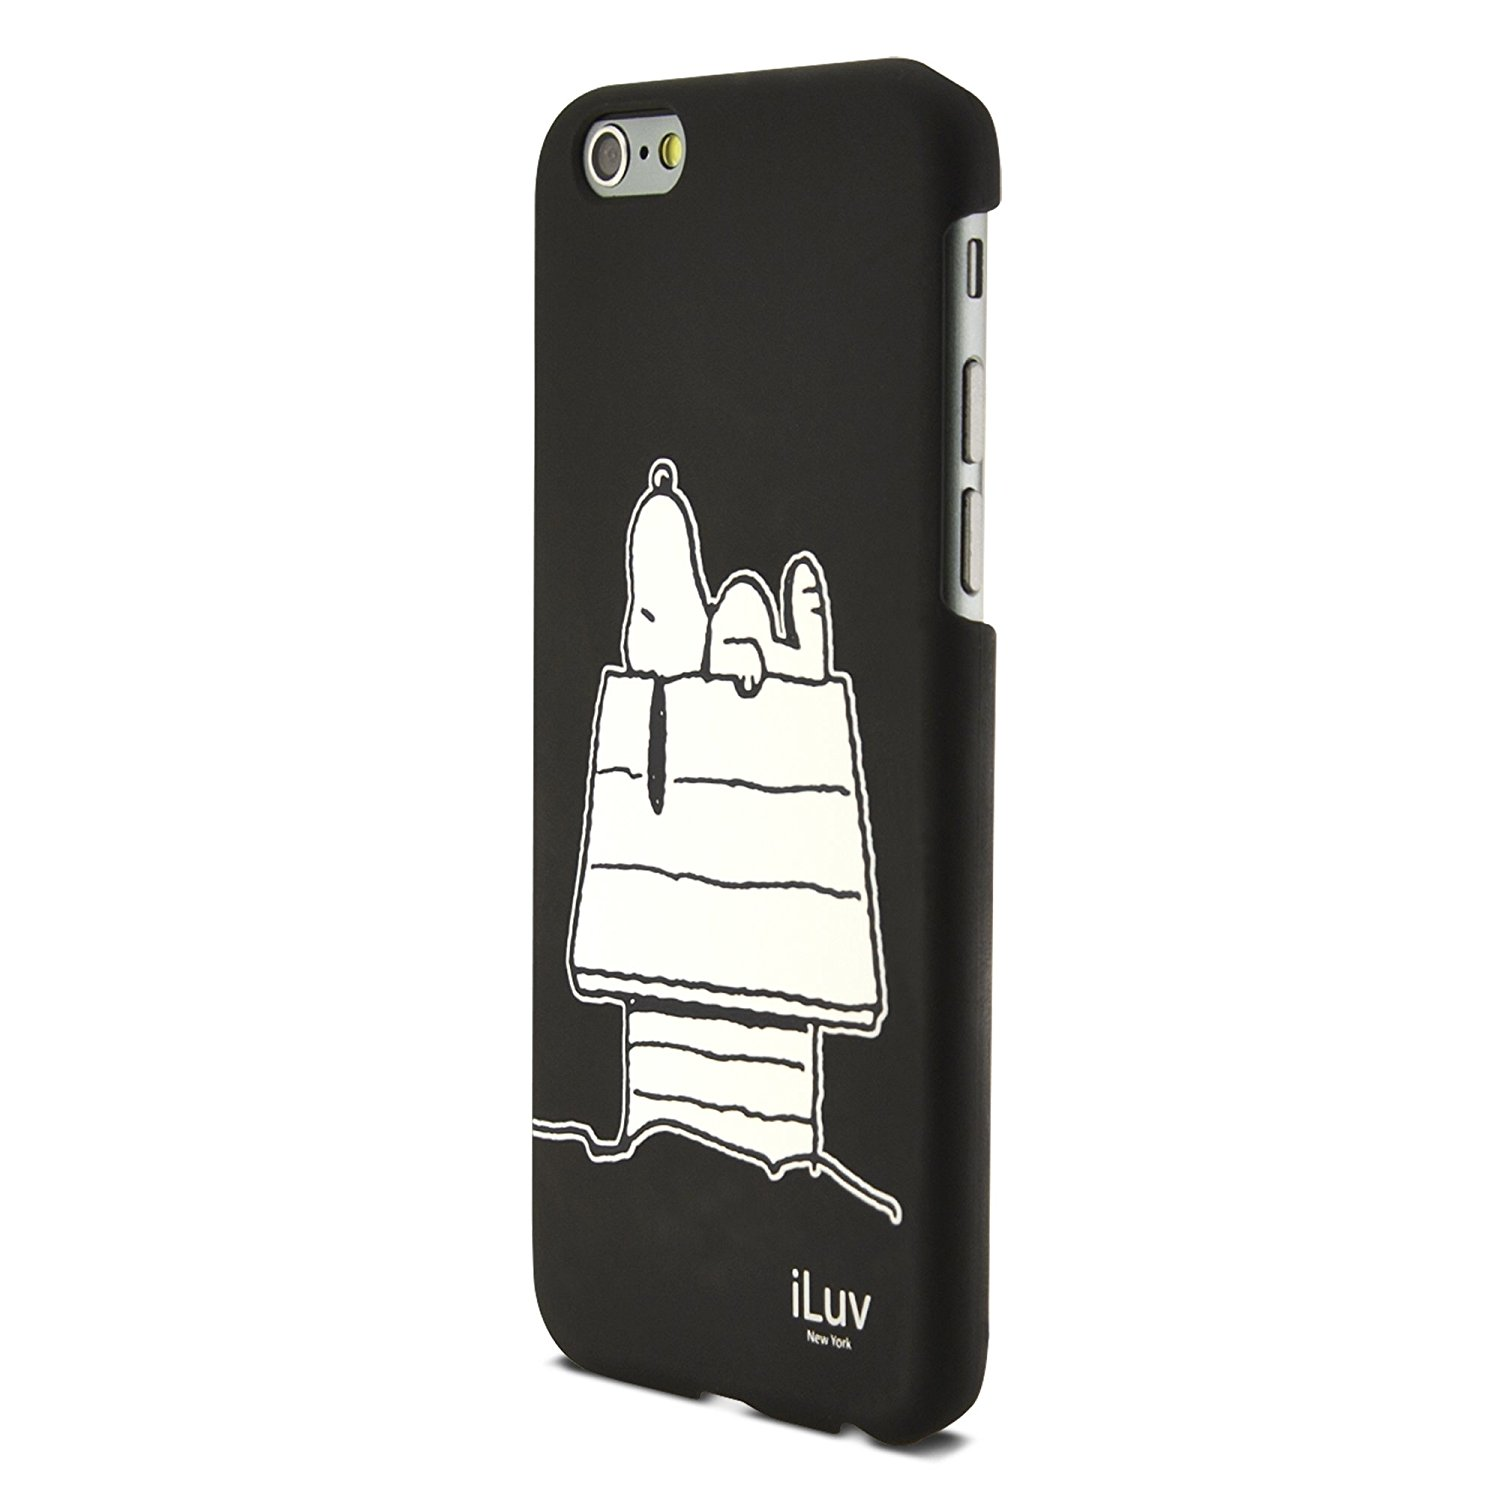 on sale b1358 a0b70 Cheap Iphone 5 Case Snoopy, find Iphone 5 Case Snoopy deals on line ...